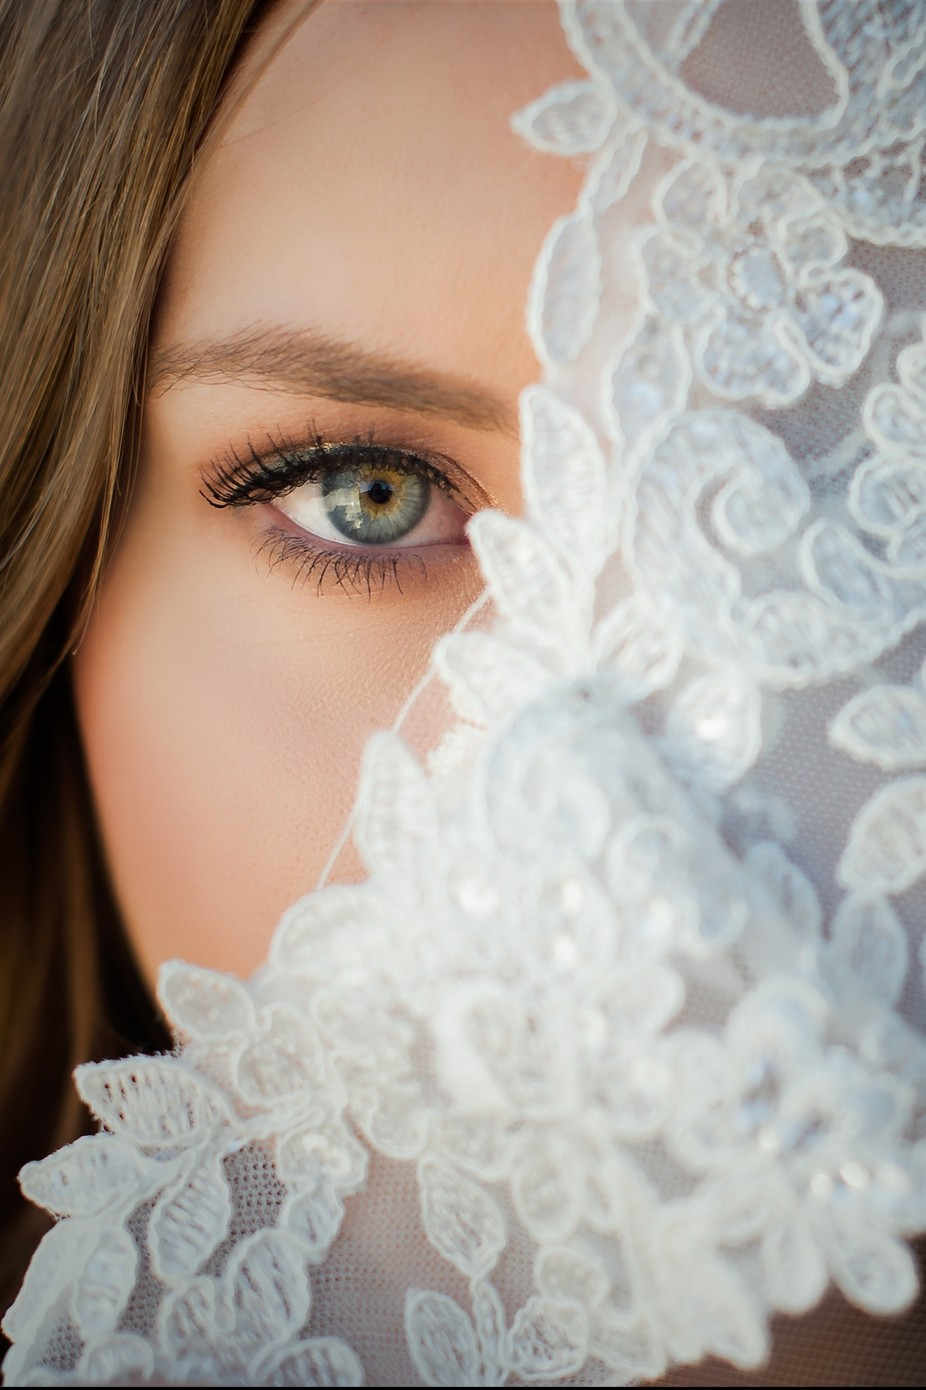 Only Eyes for You by BKoesel - Weddings And Fashion Photo Contest